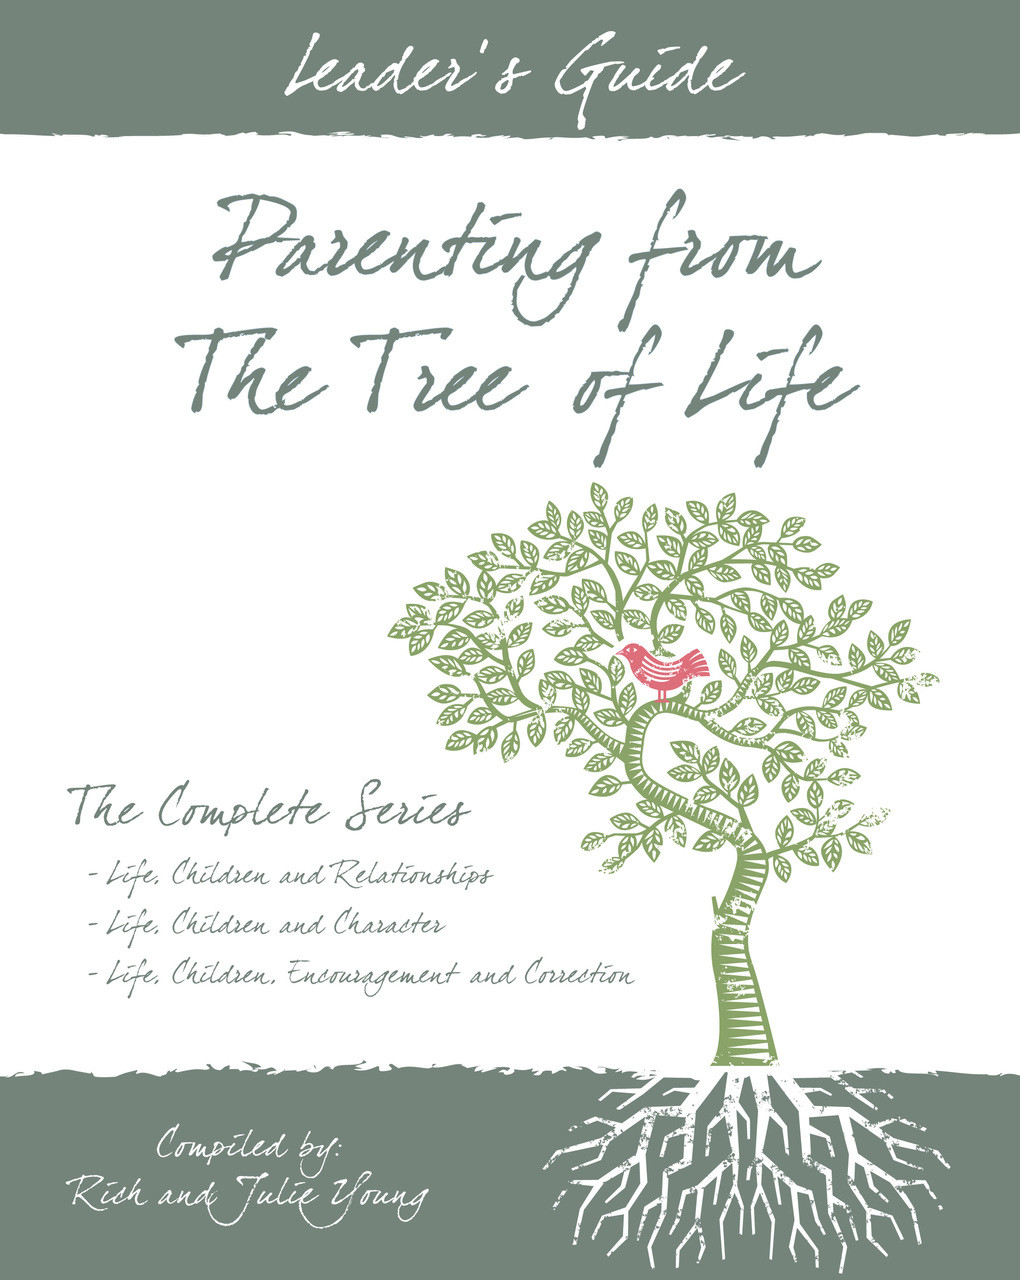 08-LEADER'S GUIDE | Parenting From the Tree of Life Life – (Print Edition)